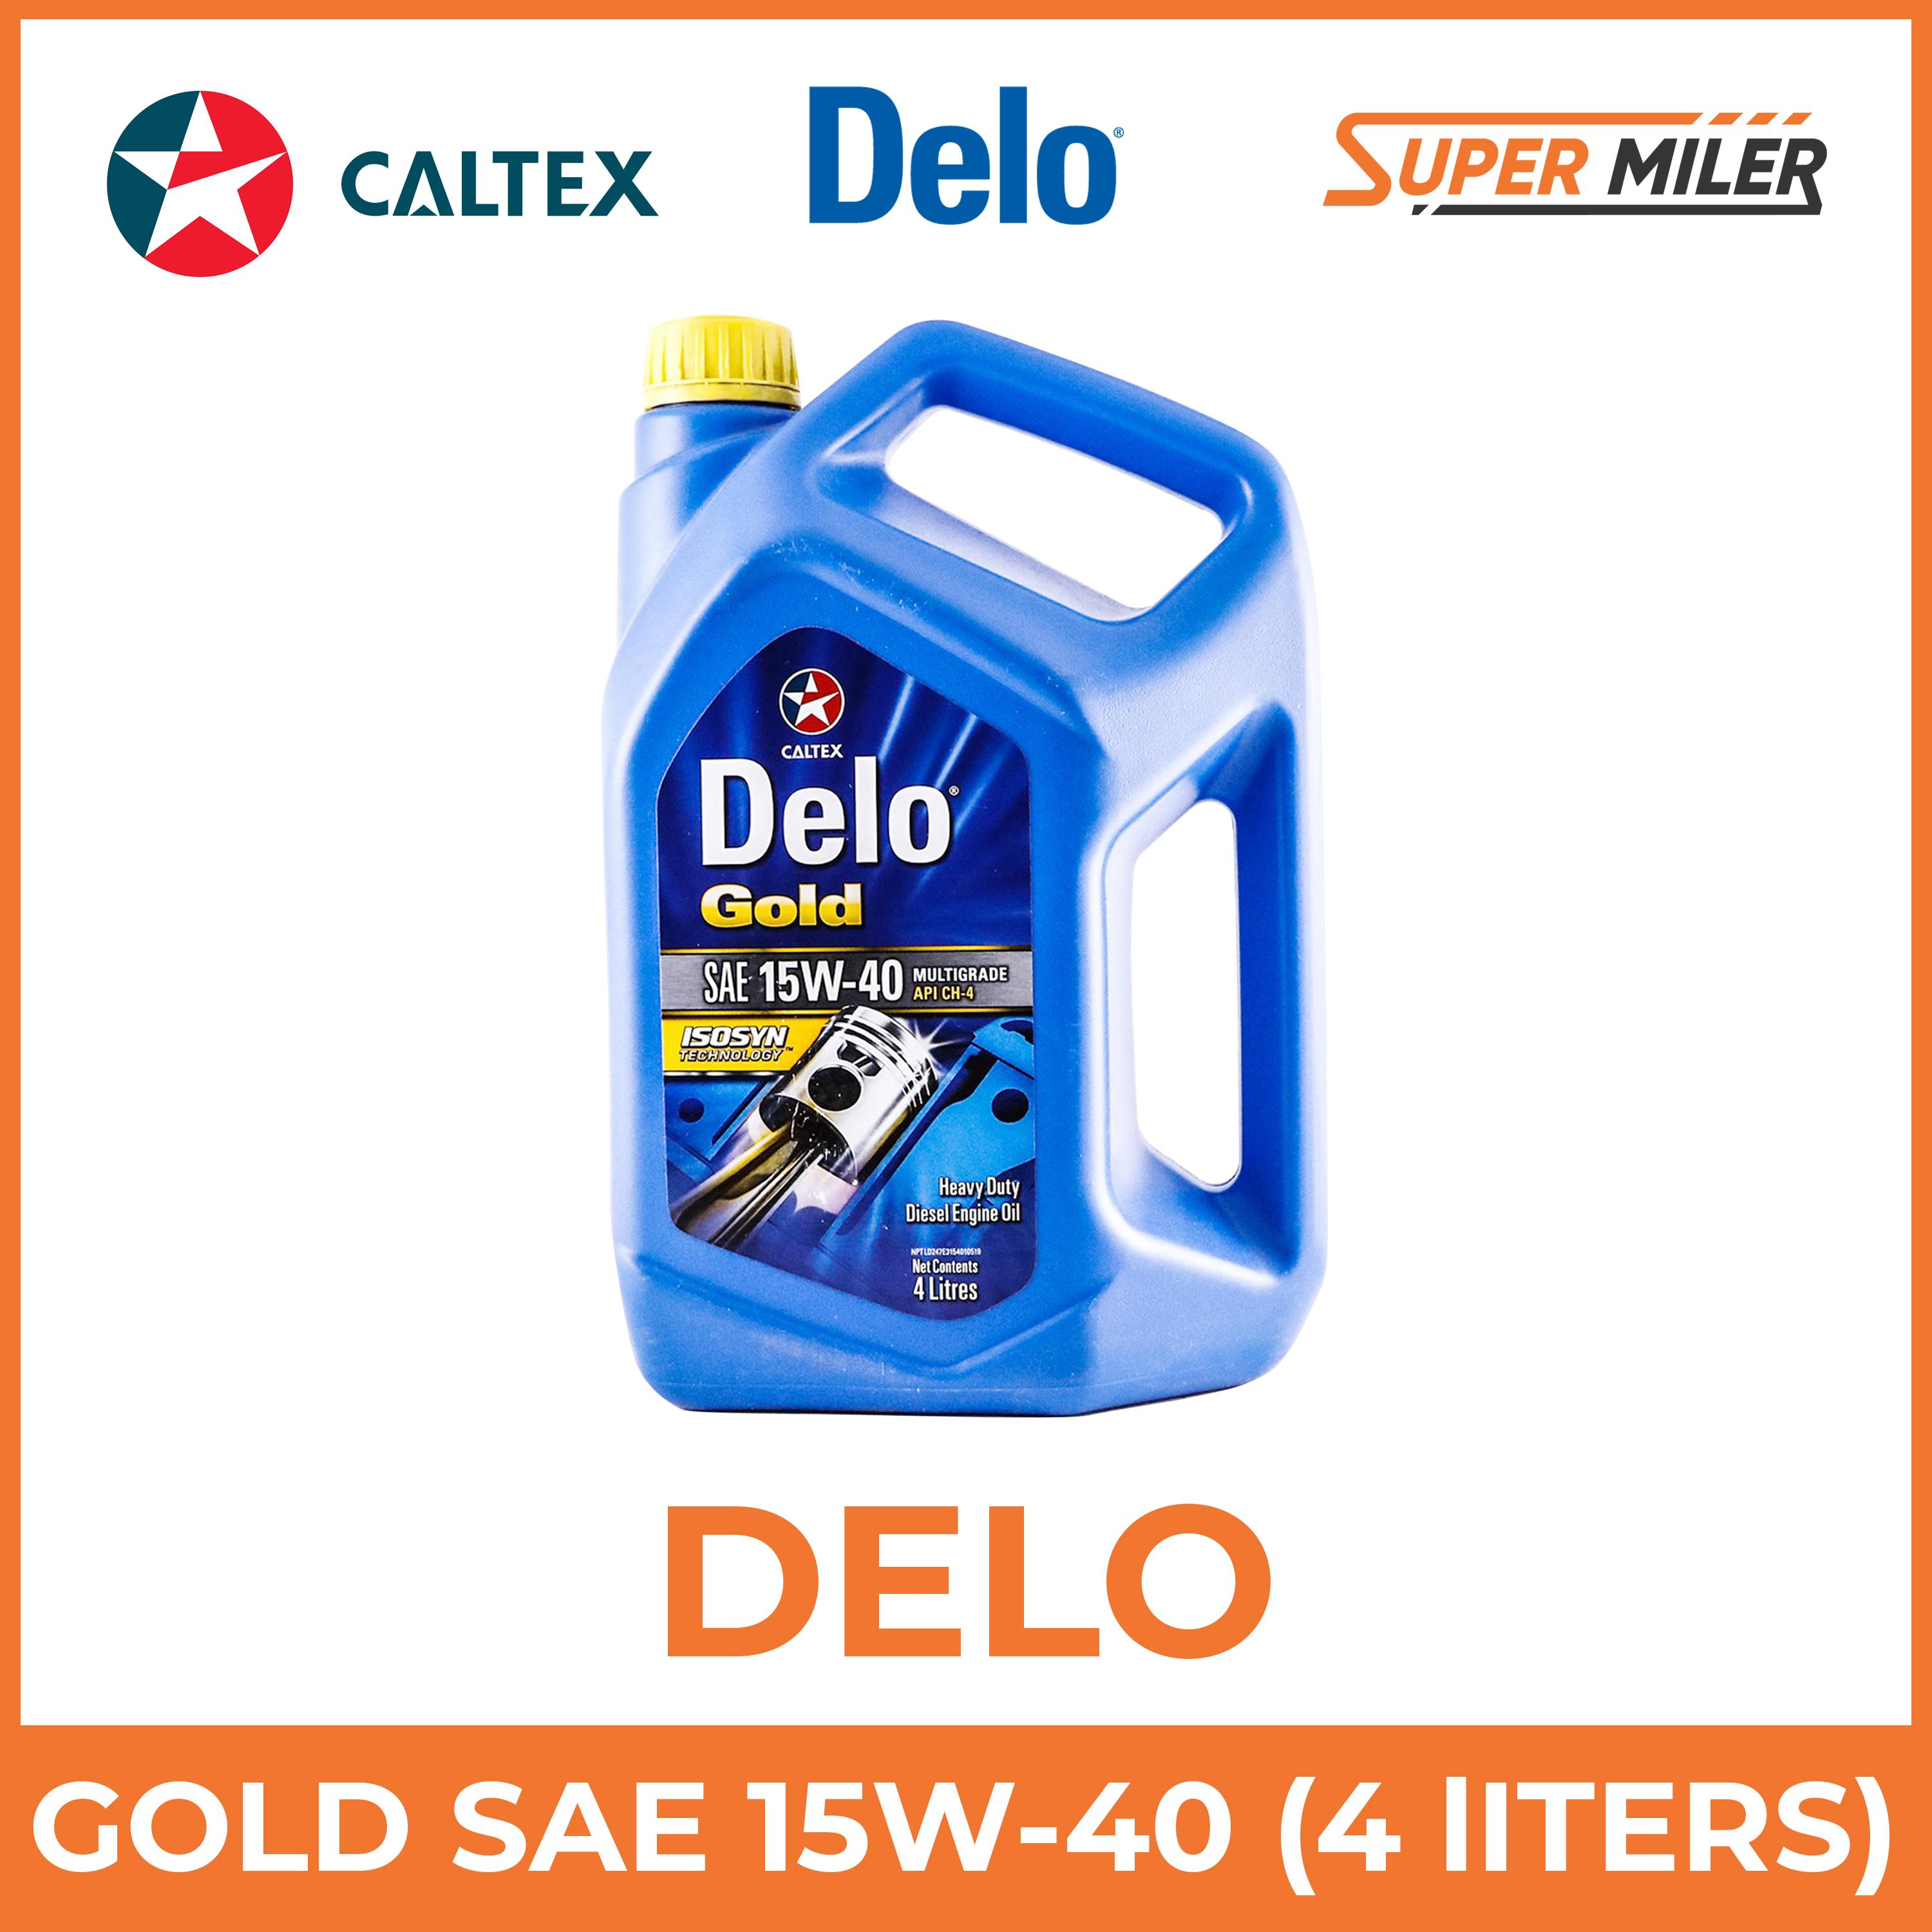 Delo Gold MG SAE 15W-40 4 liters